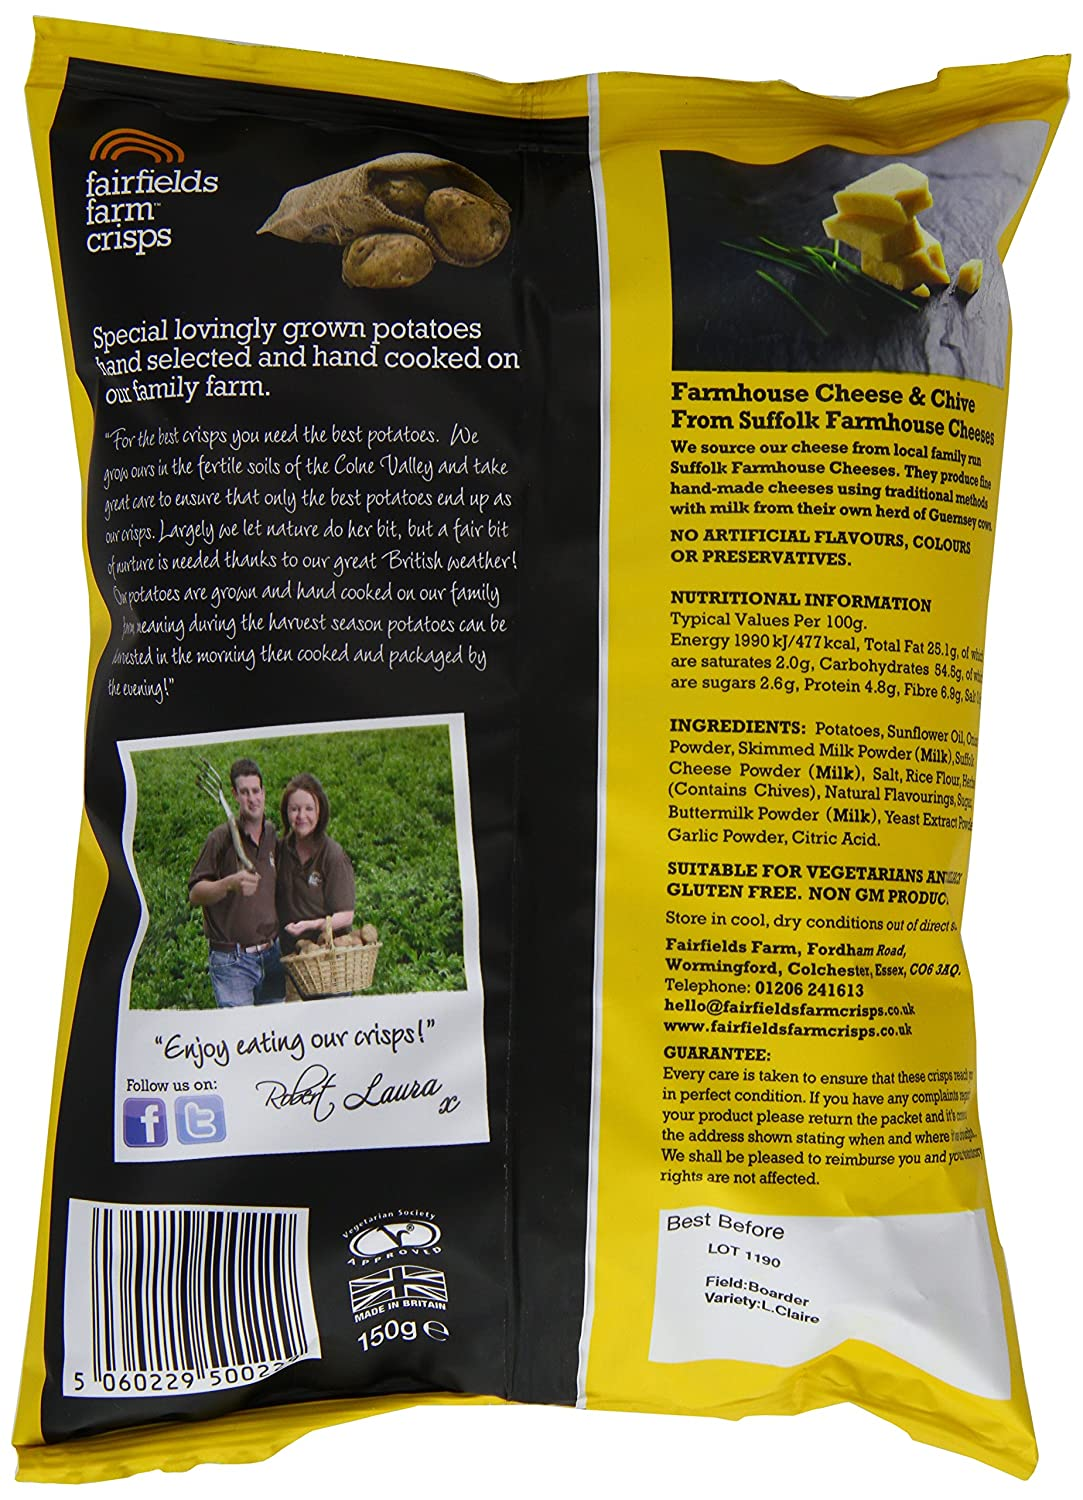 Co colour care guernsey - Fairfields Farm Crisps Farmhouse Cheese And Chive 150 G Pack Of 12 Amazon Co Uk Grocery